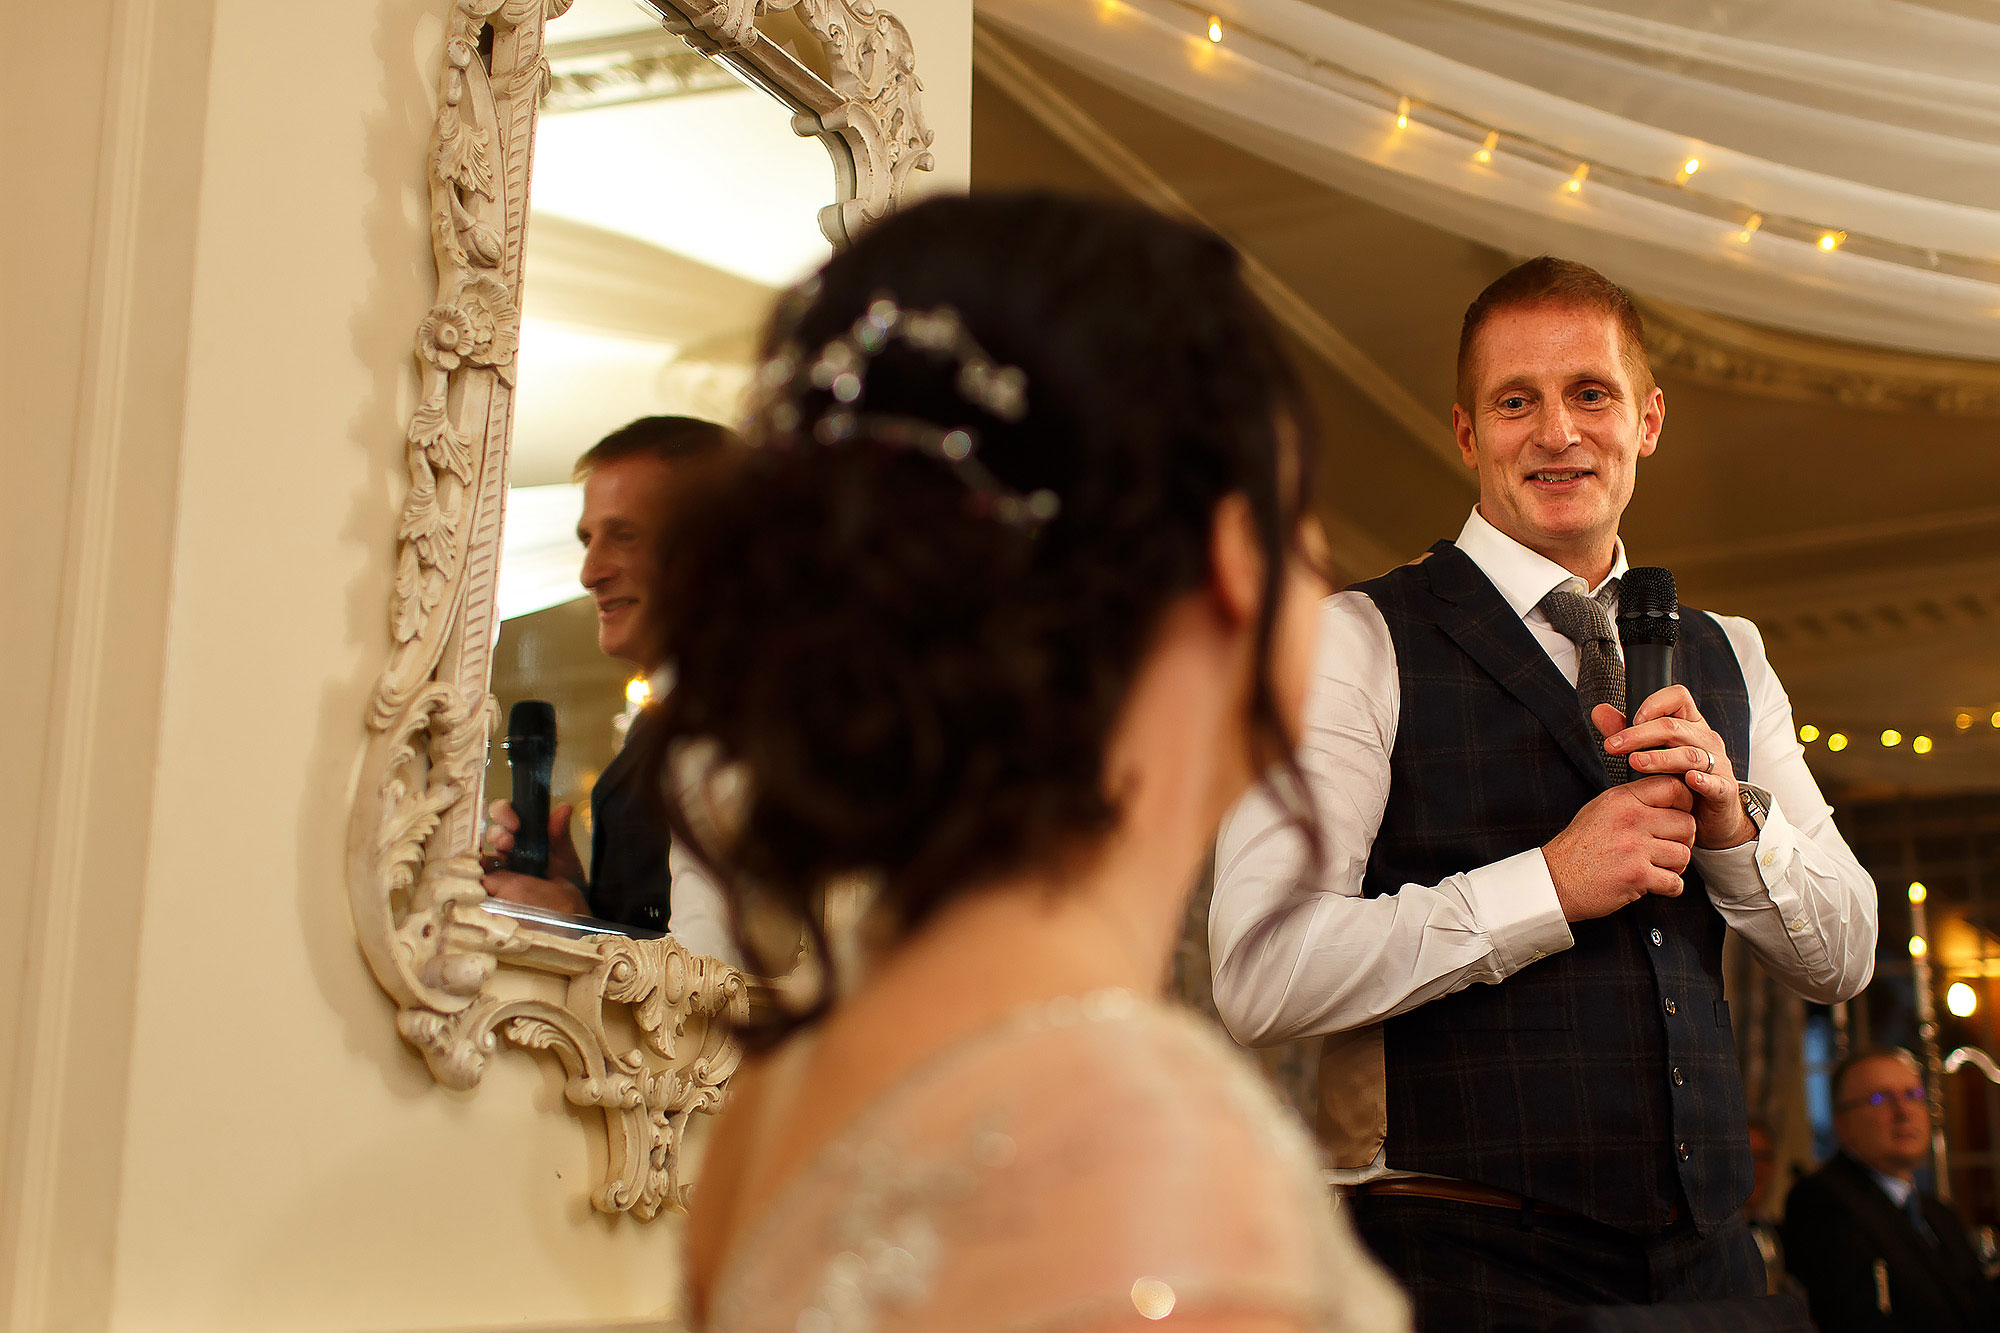 Groom looking towards the bride as he makes his wedding speech | Eaves Hall wedding photography by Toni Darcy